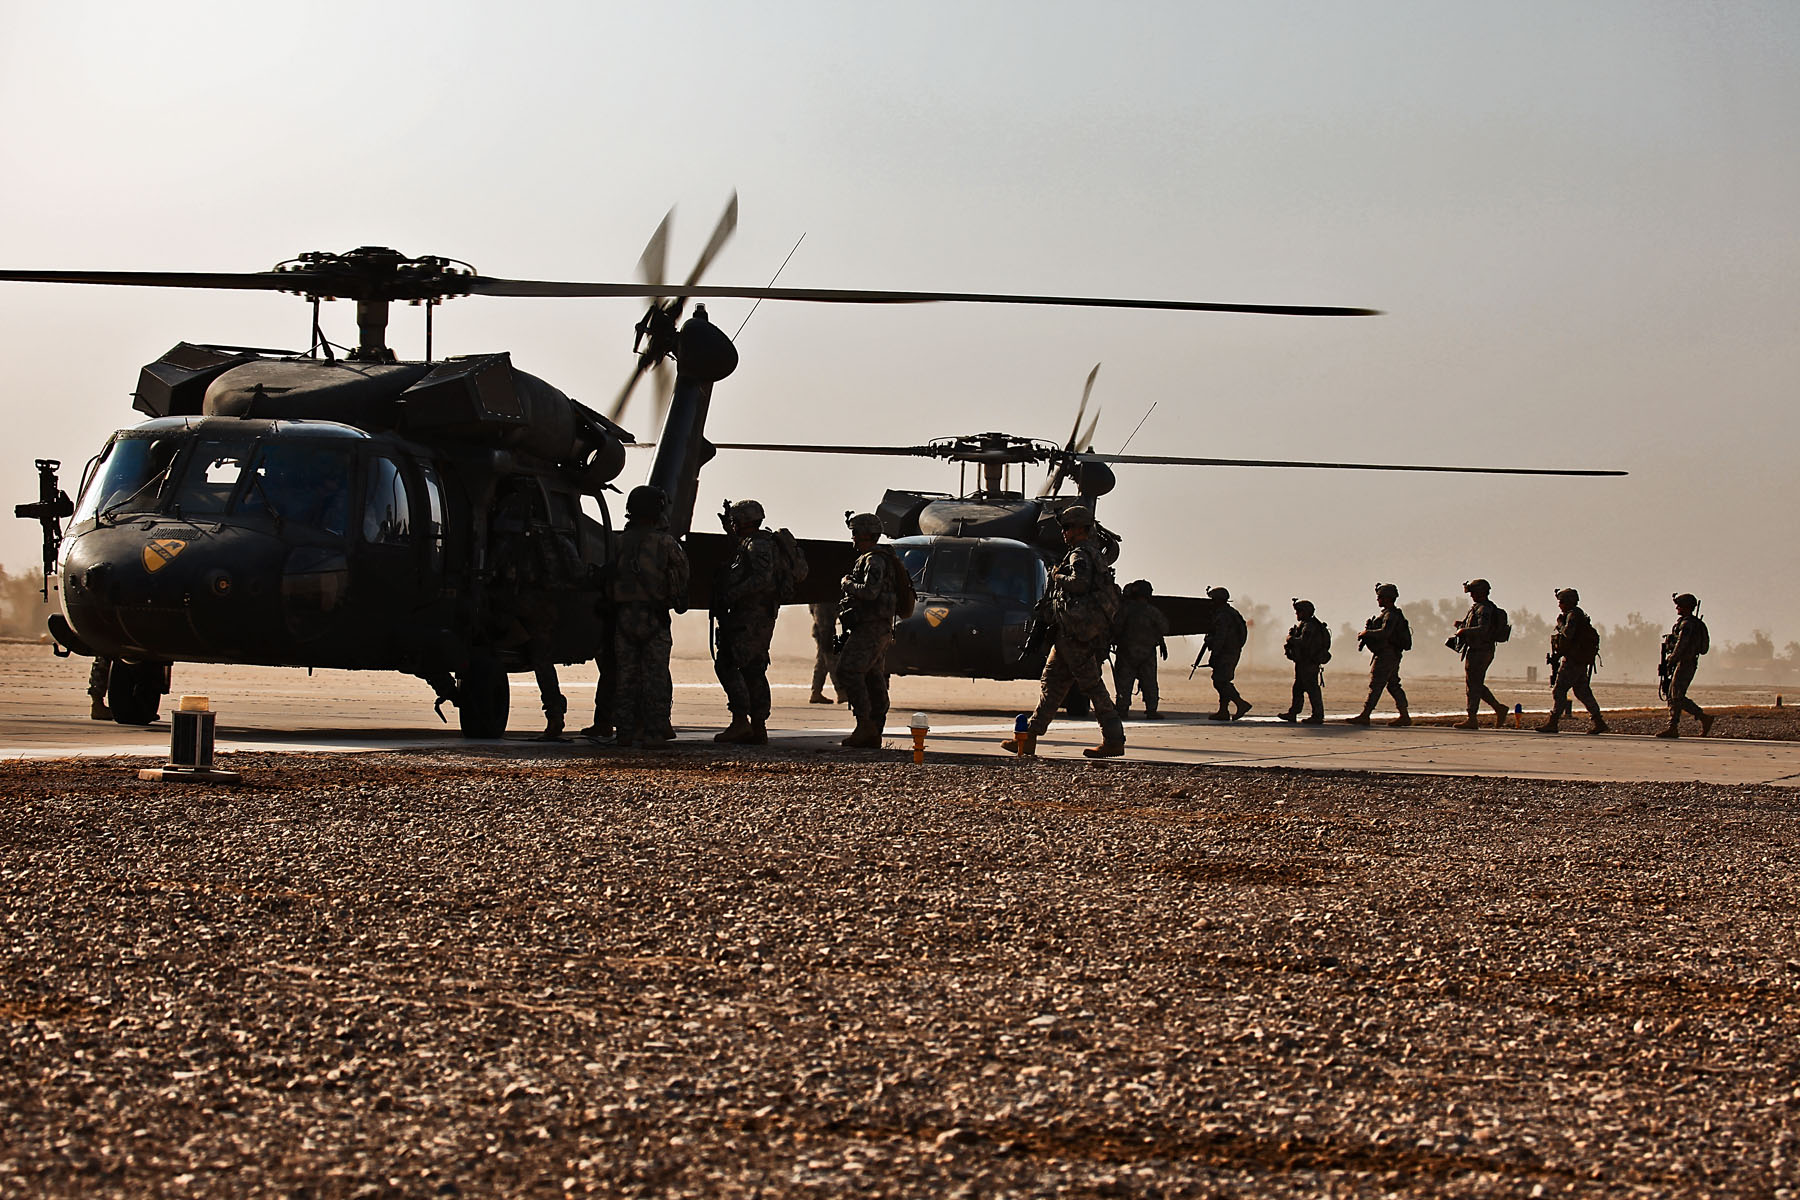 armée americaine - Page 2 US_Army_51223_TAJI,_Iraq-Loading_on_Black_Hawk_helicopters,_Soldiers_of_Company_F,_3rd_Battalion,_227th_Aviation_Regiment,_1st_Cavalry_Brigade,_1st_Cavalry_Division,_Multi-National_Division_-_Baghdad,_prepare_to_fl